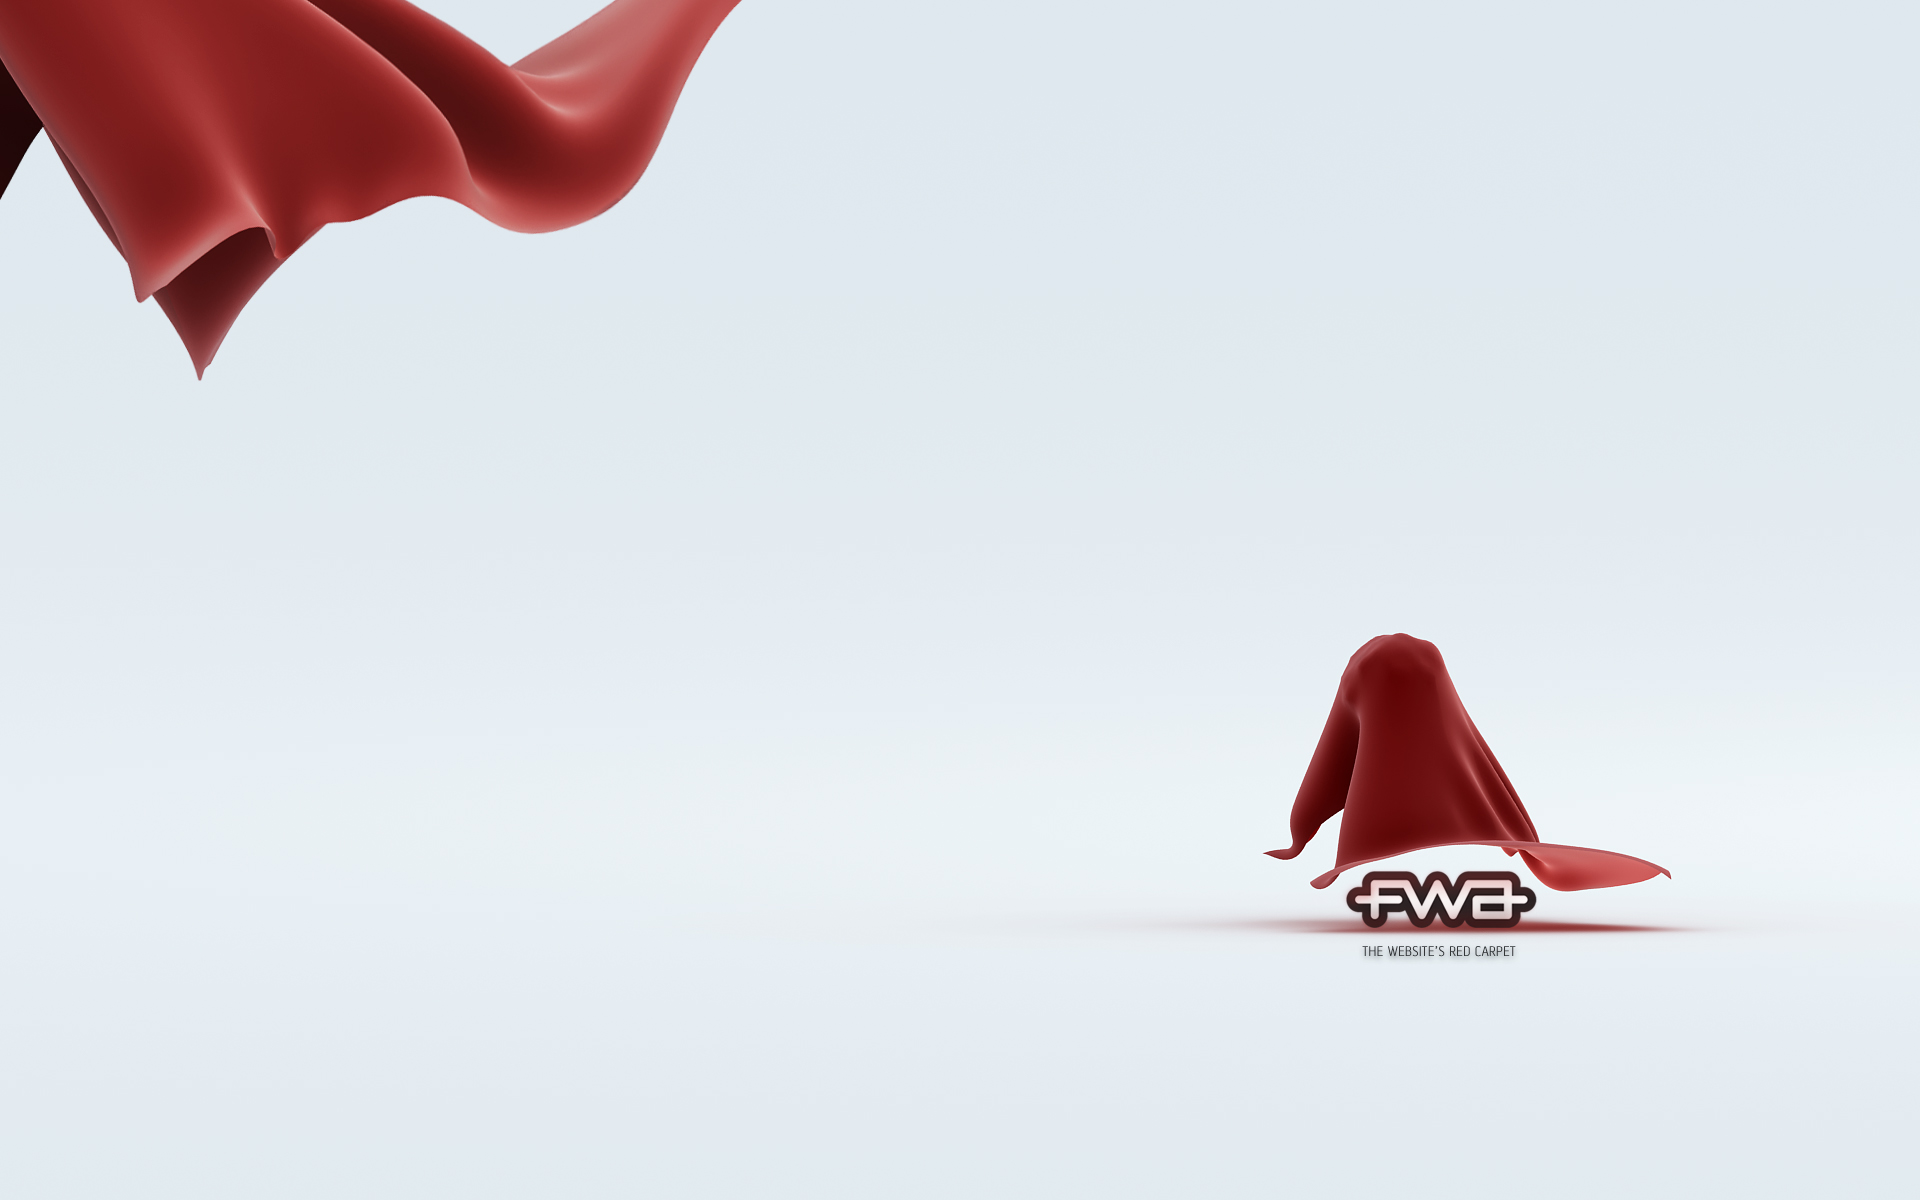 Widescreen FWA Creative Design 27059